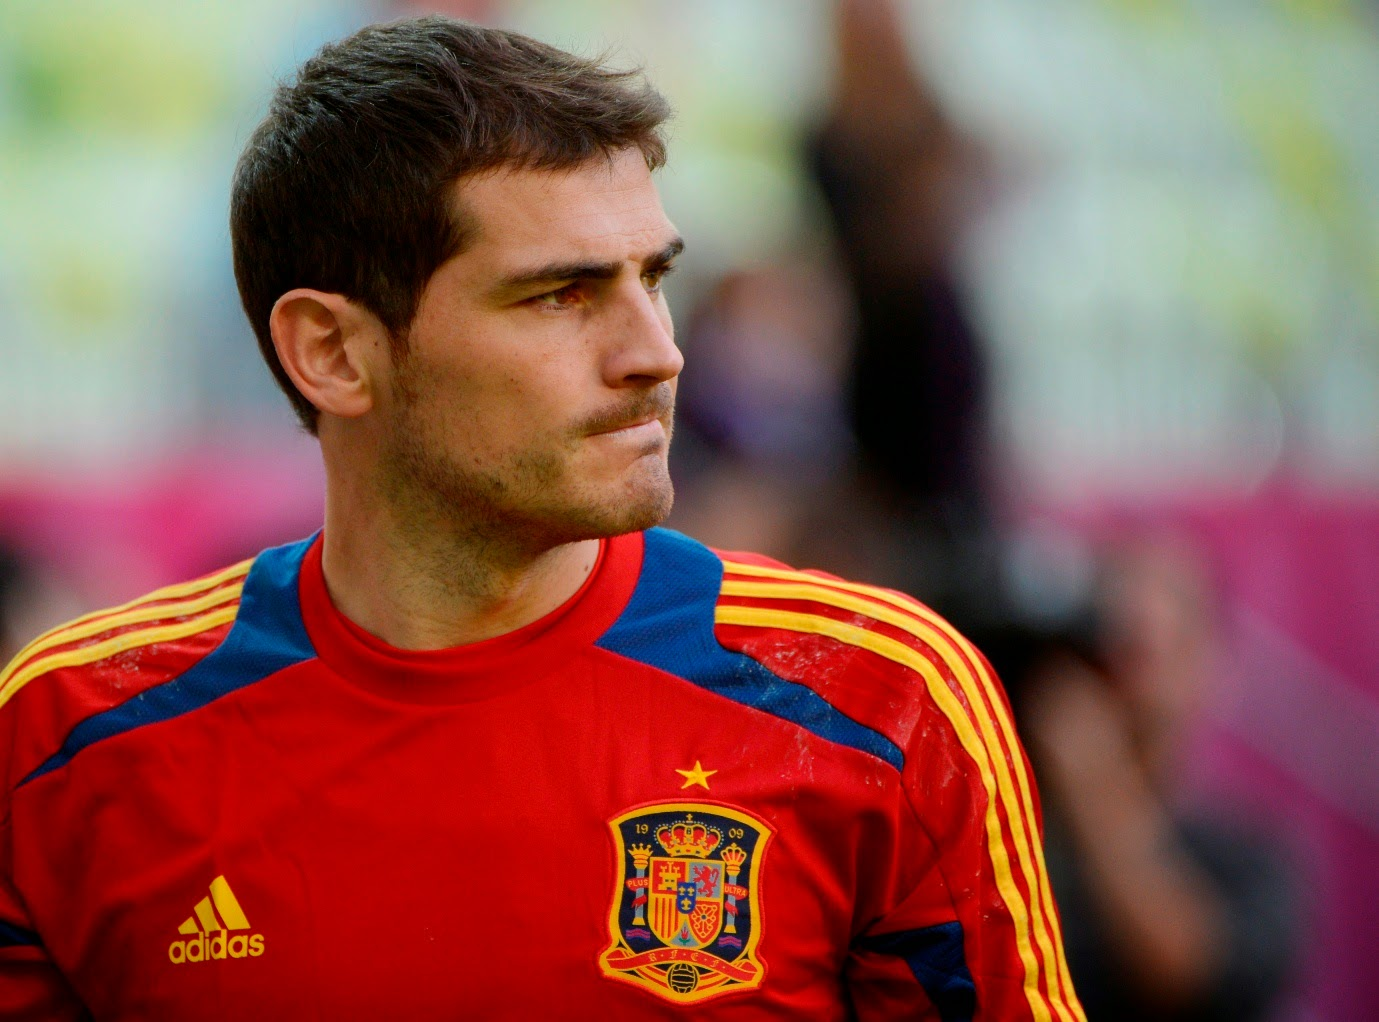 fcf65cbbc 5 Interesting Facts About Iker Casillas. After a difficult World Cup ...